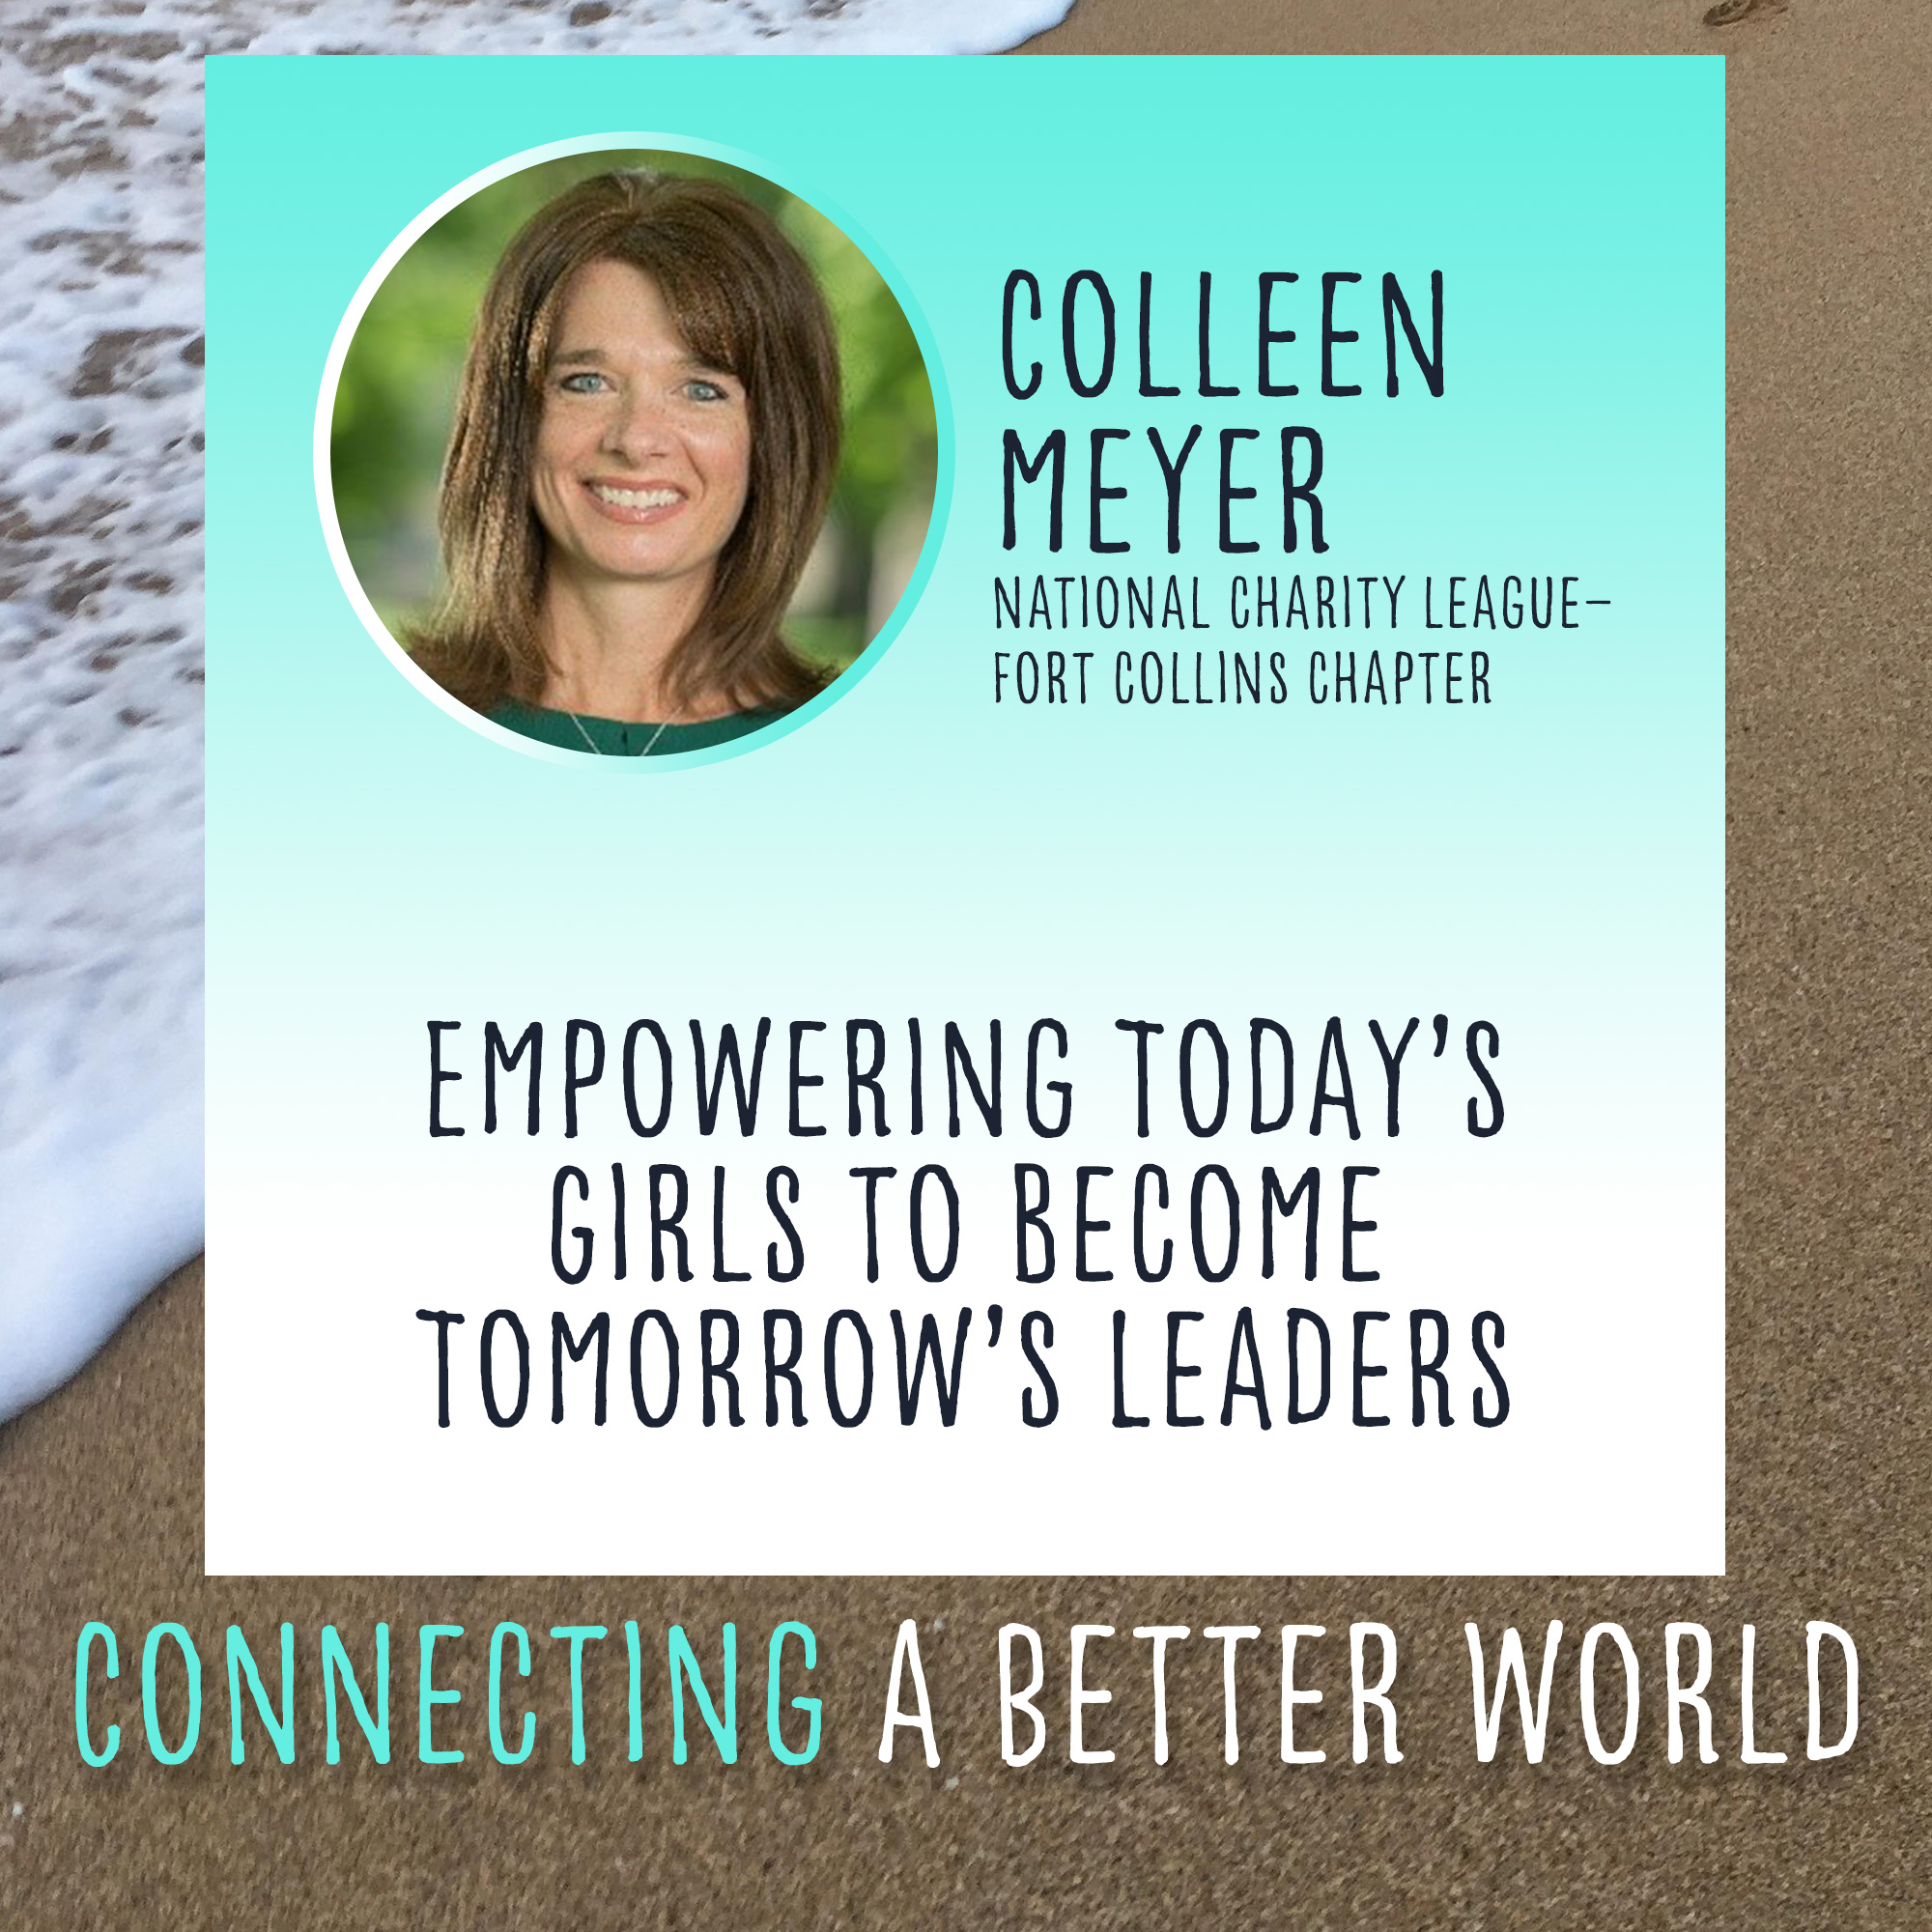 Empowering Today's Girls to Become Tomorrow's Leaders